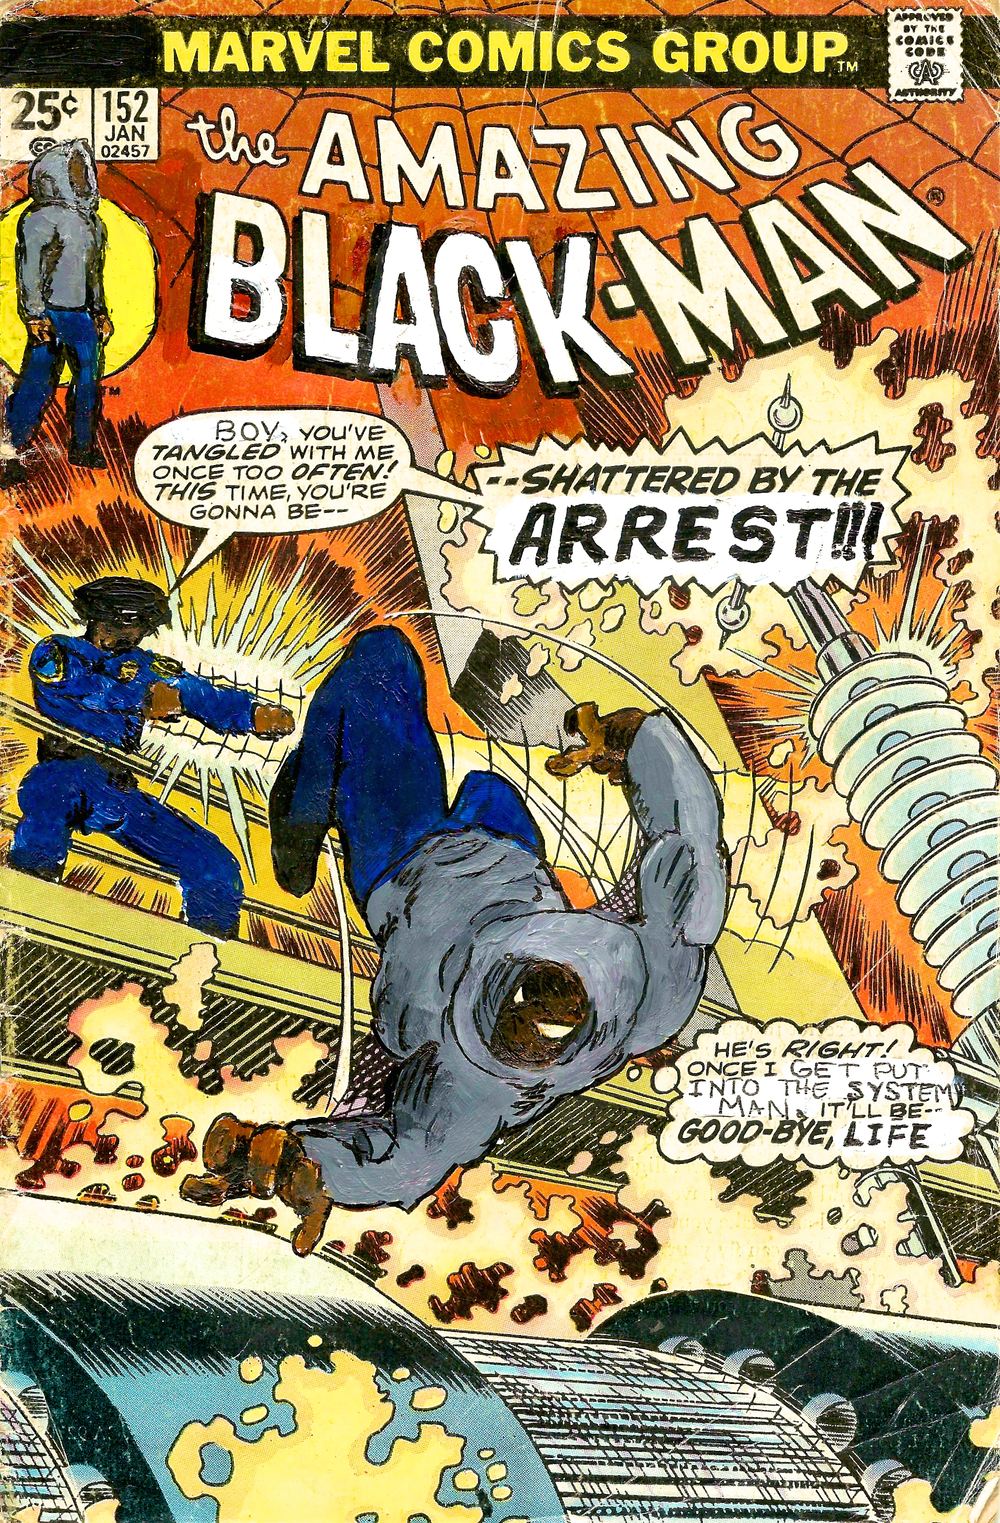 The Amazing Black-Man #152